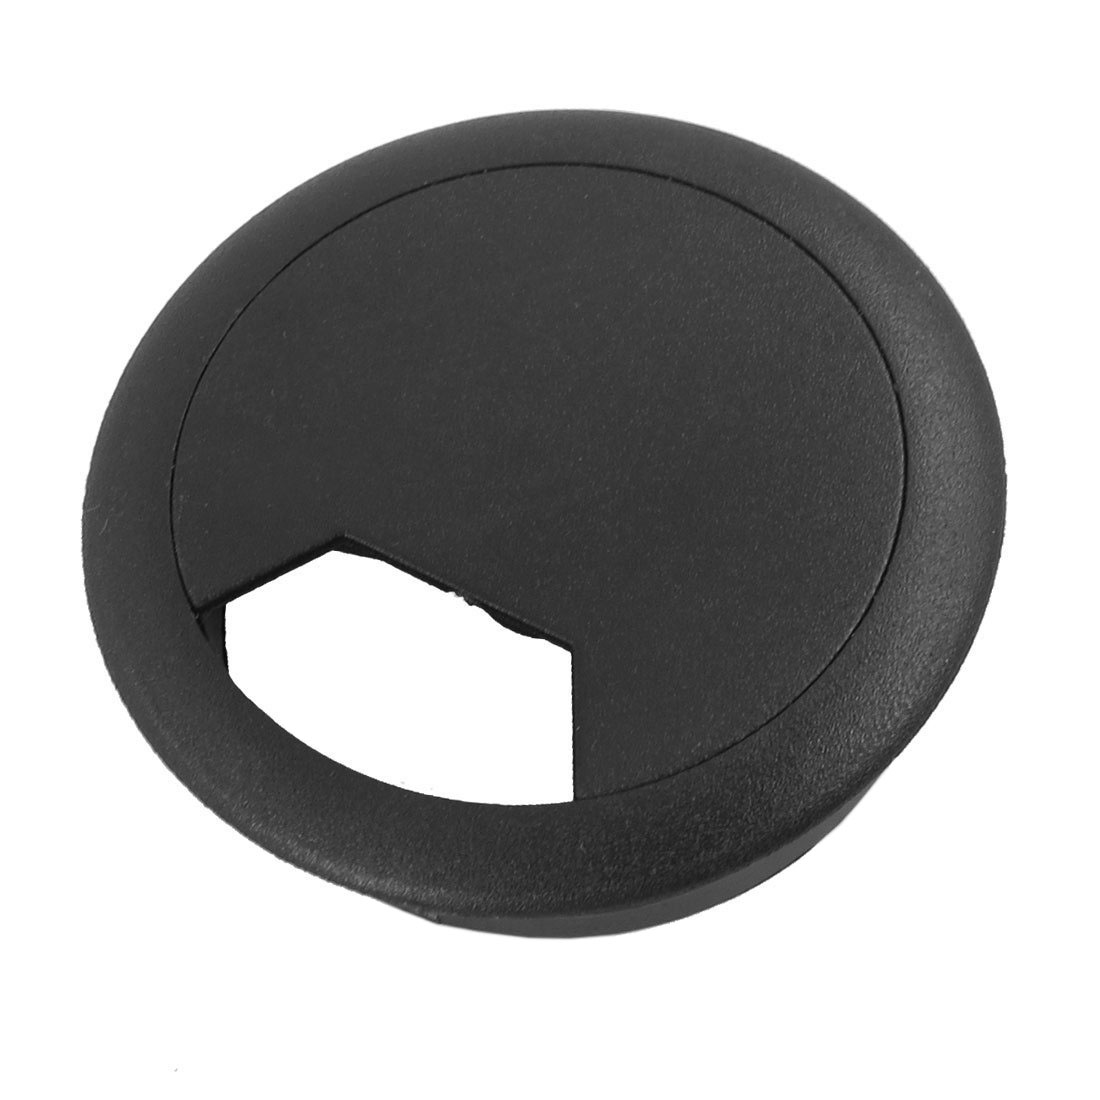 2 Pcs 50mm Diameter Desk Wire Cord Cable Grommets Hole Cover Black 2 Pcs 50mm Diameter Desk Wire Cord Cable Grommets Hole Cover Black